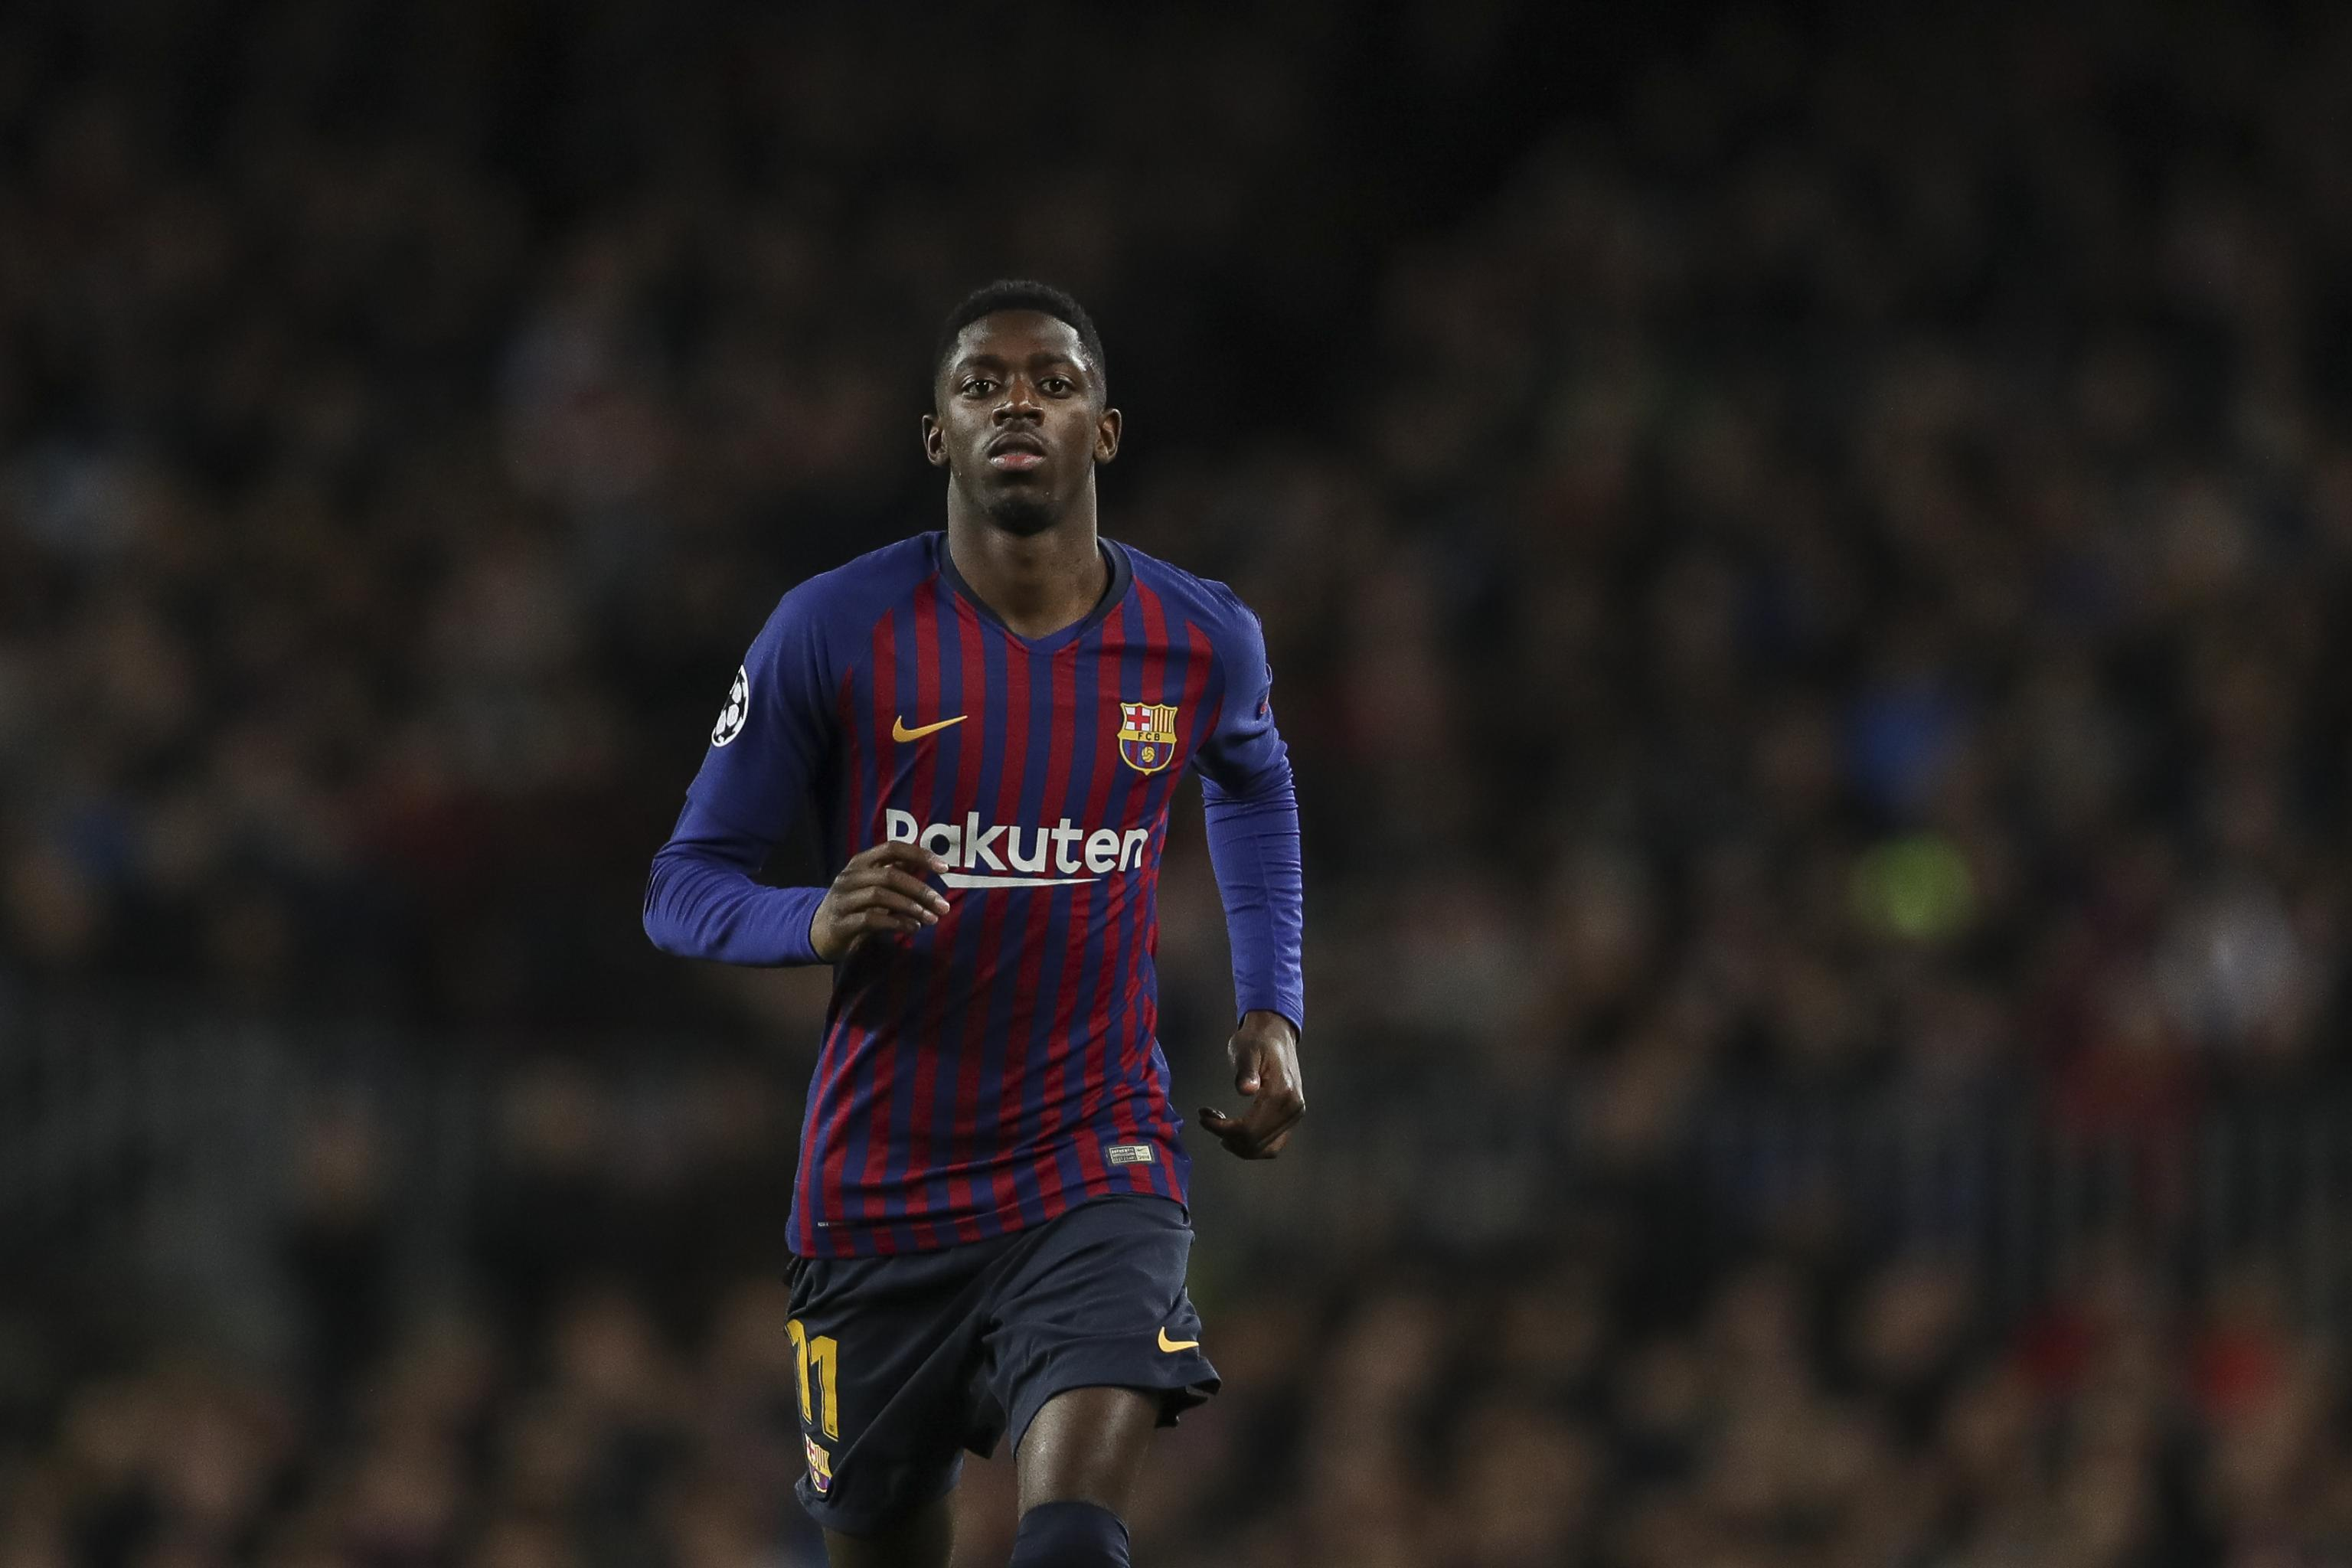 reputable site 6bfc7 858f7 Report: Barcelona 'Confident' Ousmane Dembele Will Be Fit ...